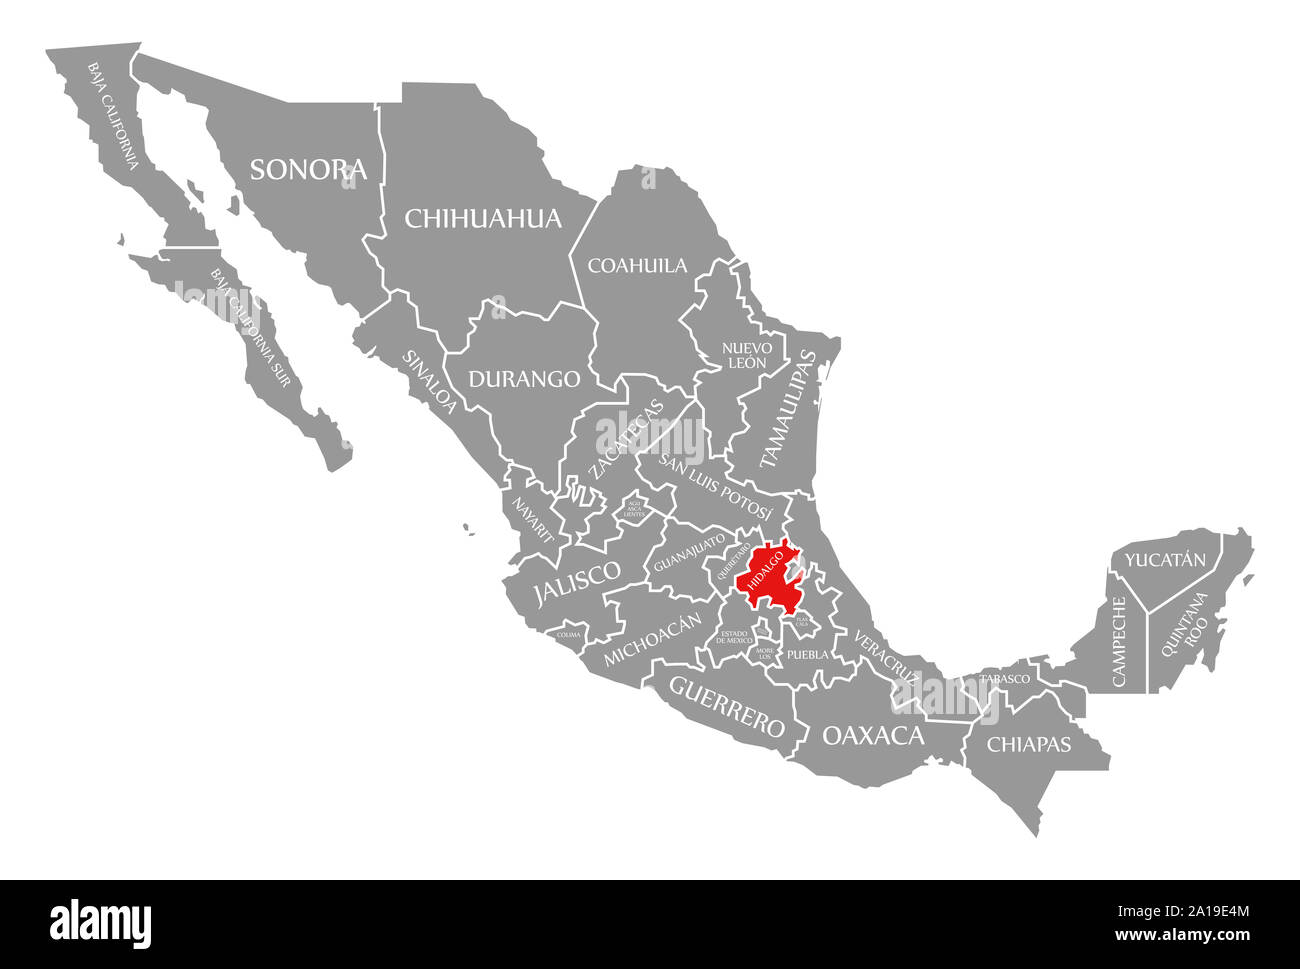 Hidalgo Red Highlighted In Map Of Mexico Stock Photo 327820324